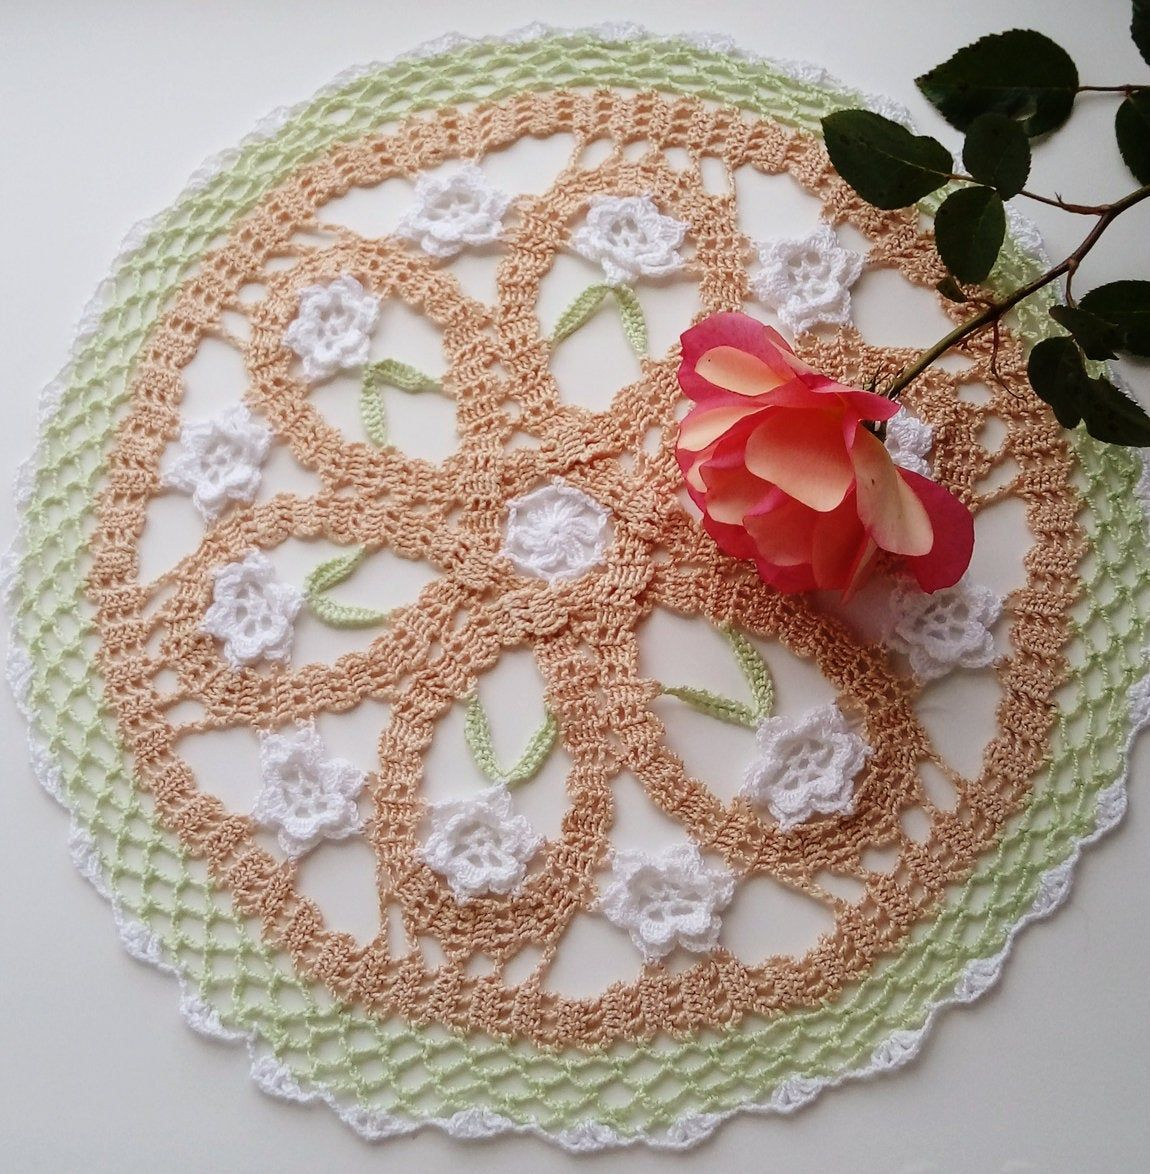 Brussels Lace Crochet Doily with Irish Crochet Flowers #irishcrochetflowers